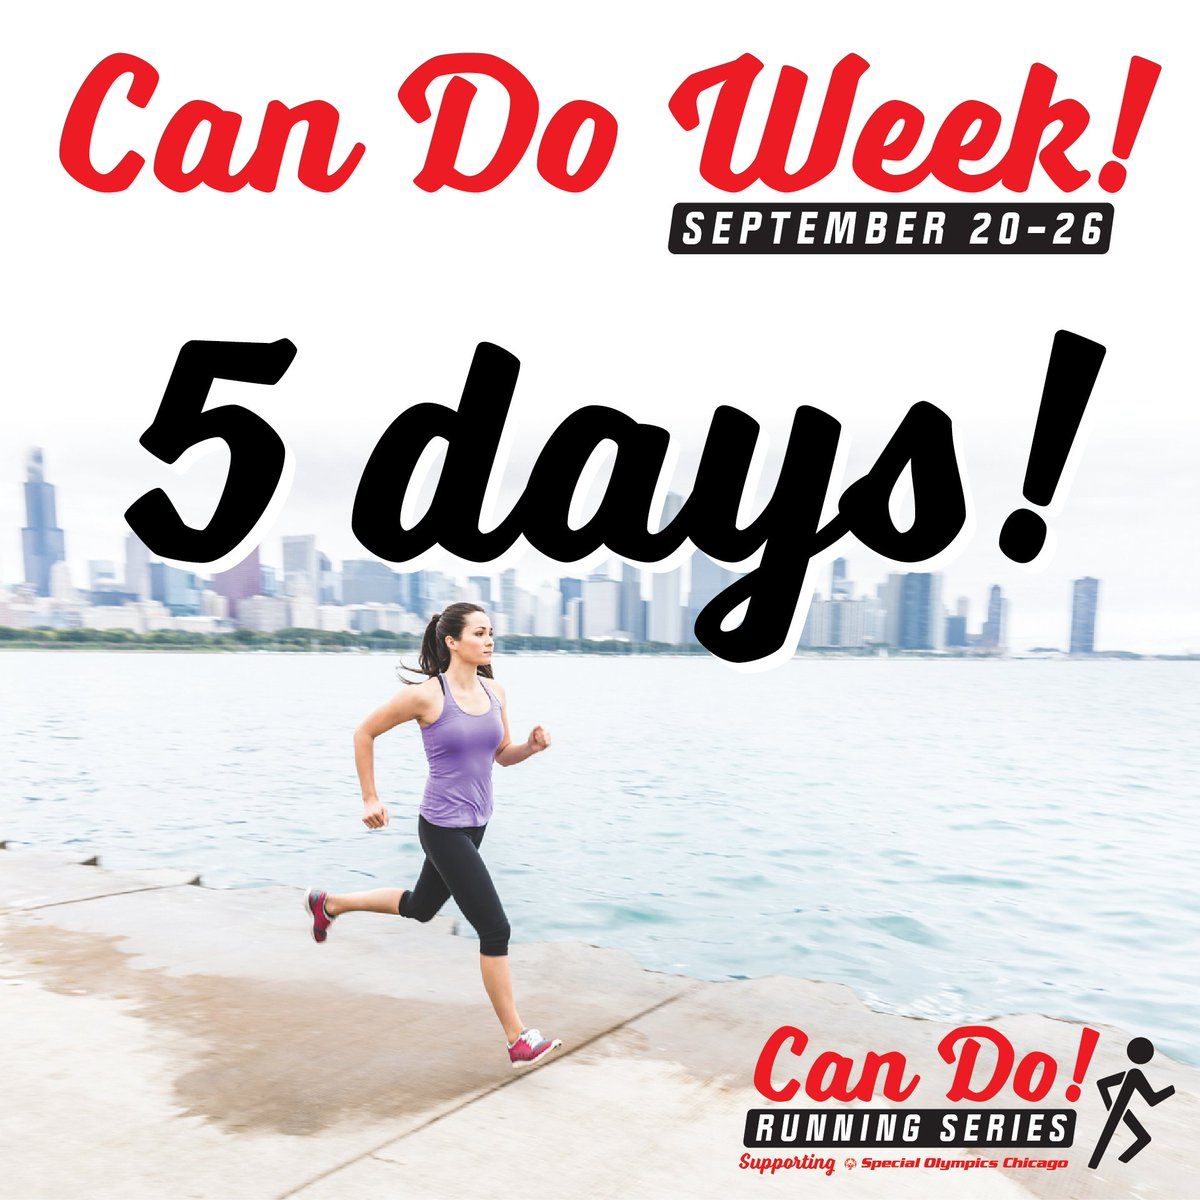 Can Do Week begins in just 5 days! Sign up for our #CanDoRunningSeries and join us for a week of running to honor what would have been our Midway Fly Away 5k, celebrate our athletes, and raise money for Special Olympic Chicago!  Register today https://t.co/xn5zQtU4pk https://t.co/EDY9UTcwhe